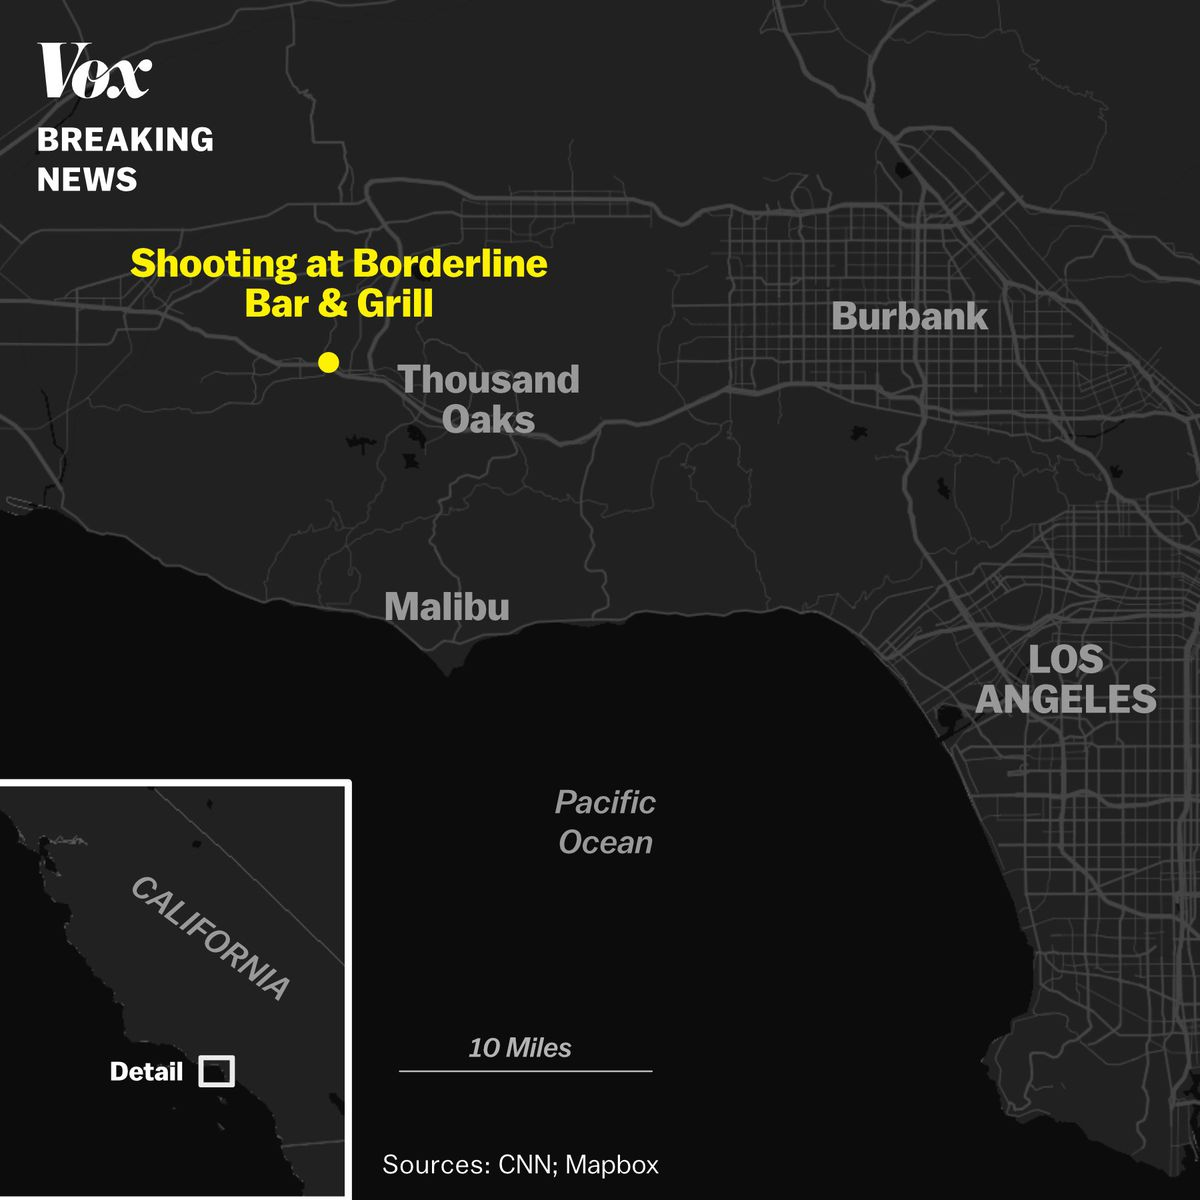 Thousand Oaks, California Mass Shooting What We Know  Vox